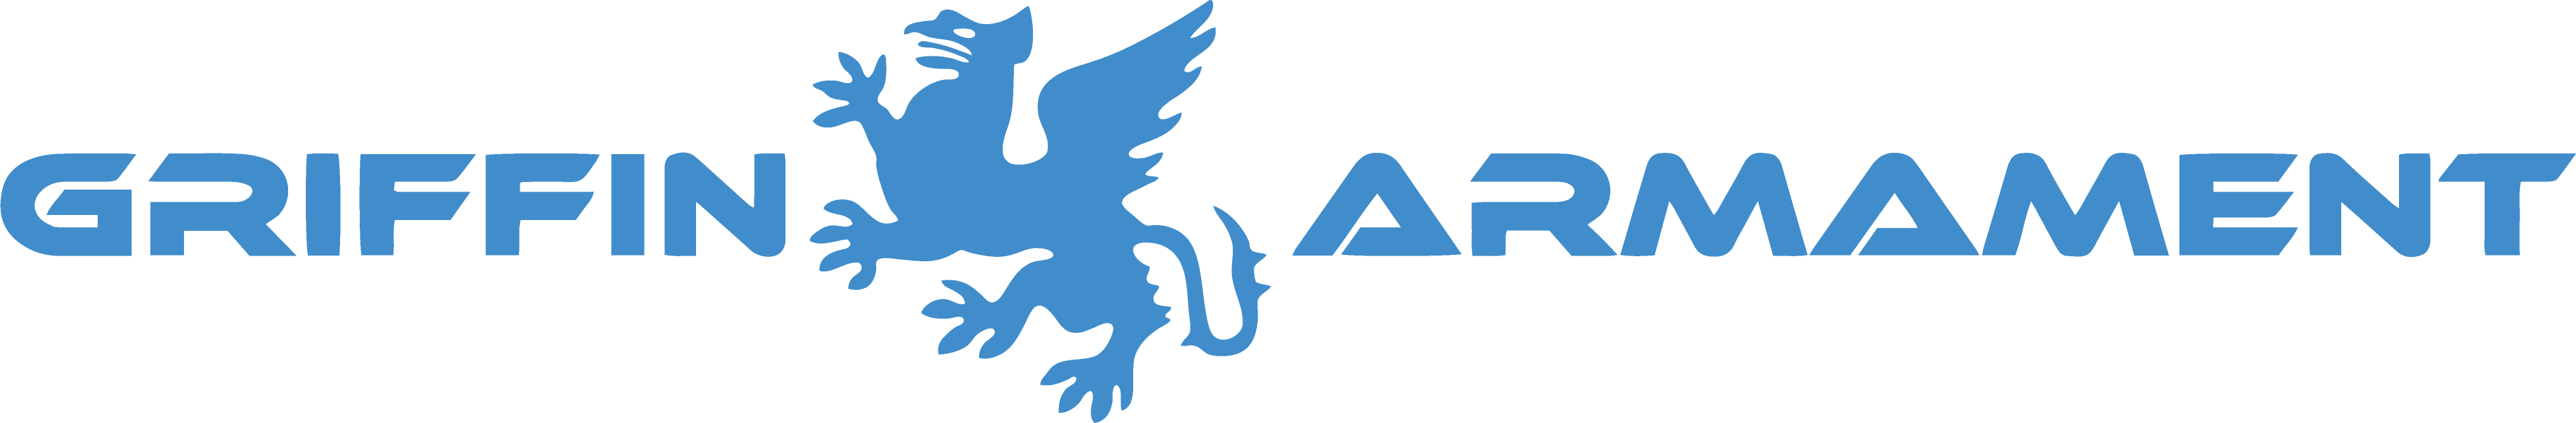 logo-griffin-armament.png